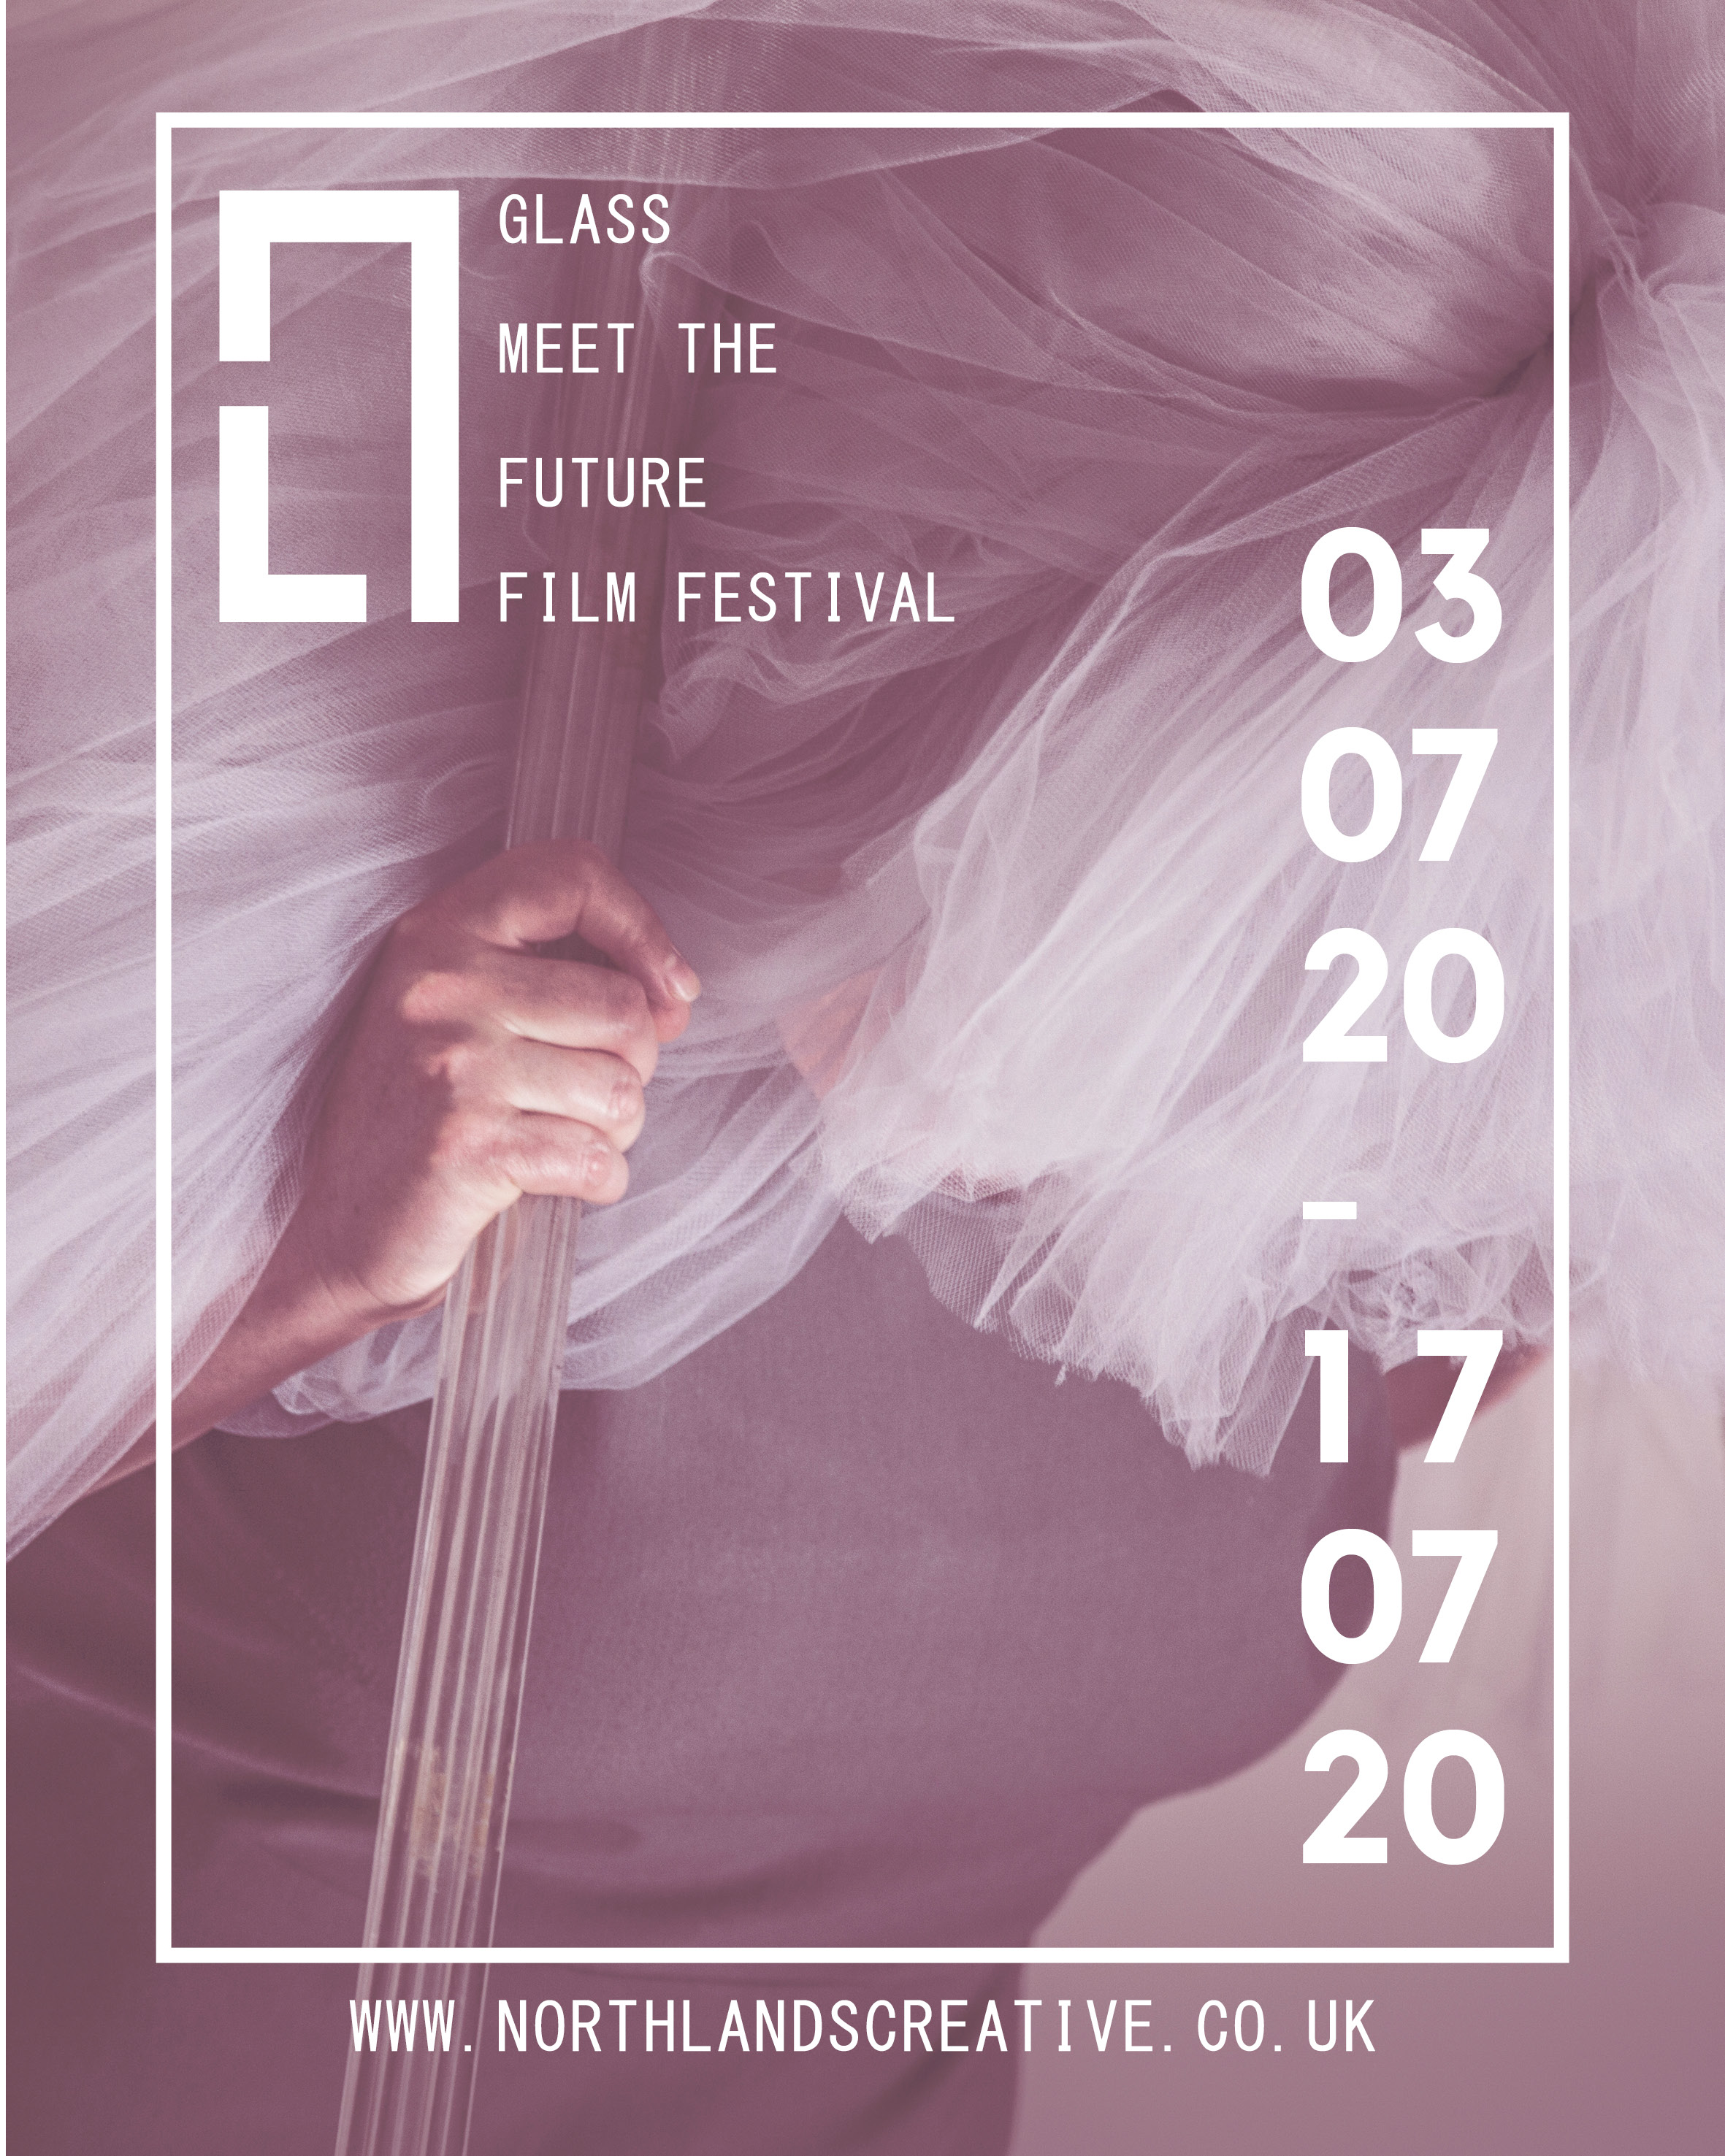 Glass Meet the Future Film Festival poster - 3rd July 2020 to 17 July 2020